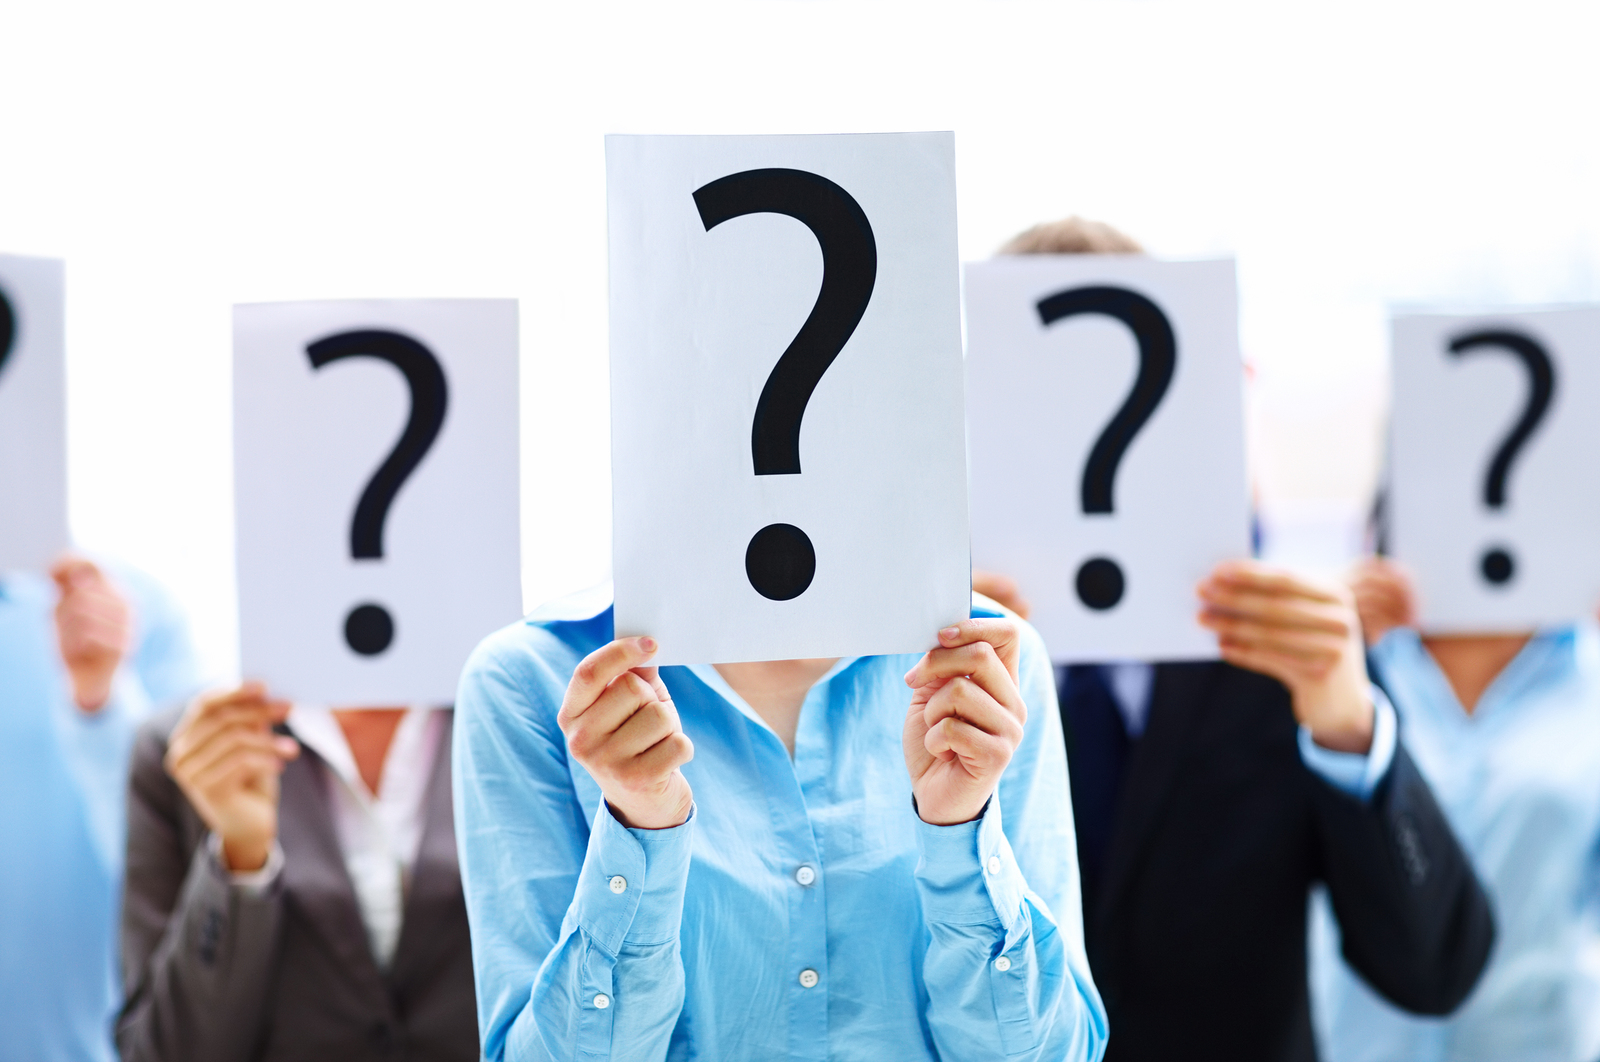 bigstock-business-people-with-question-030513.jpg